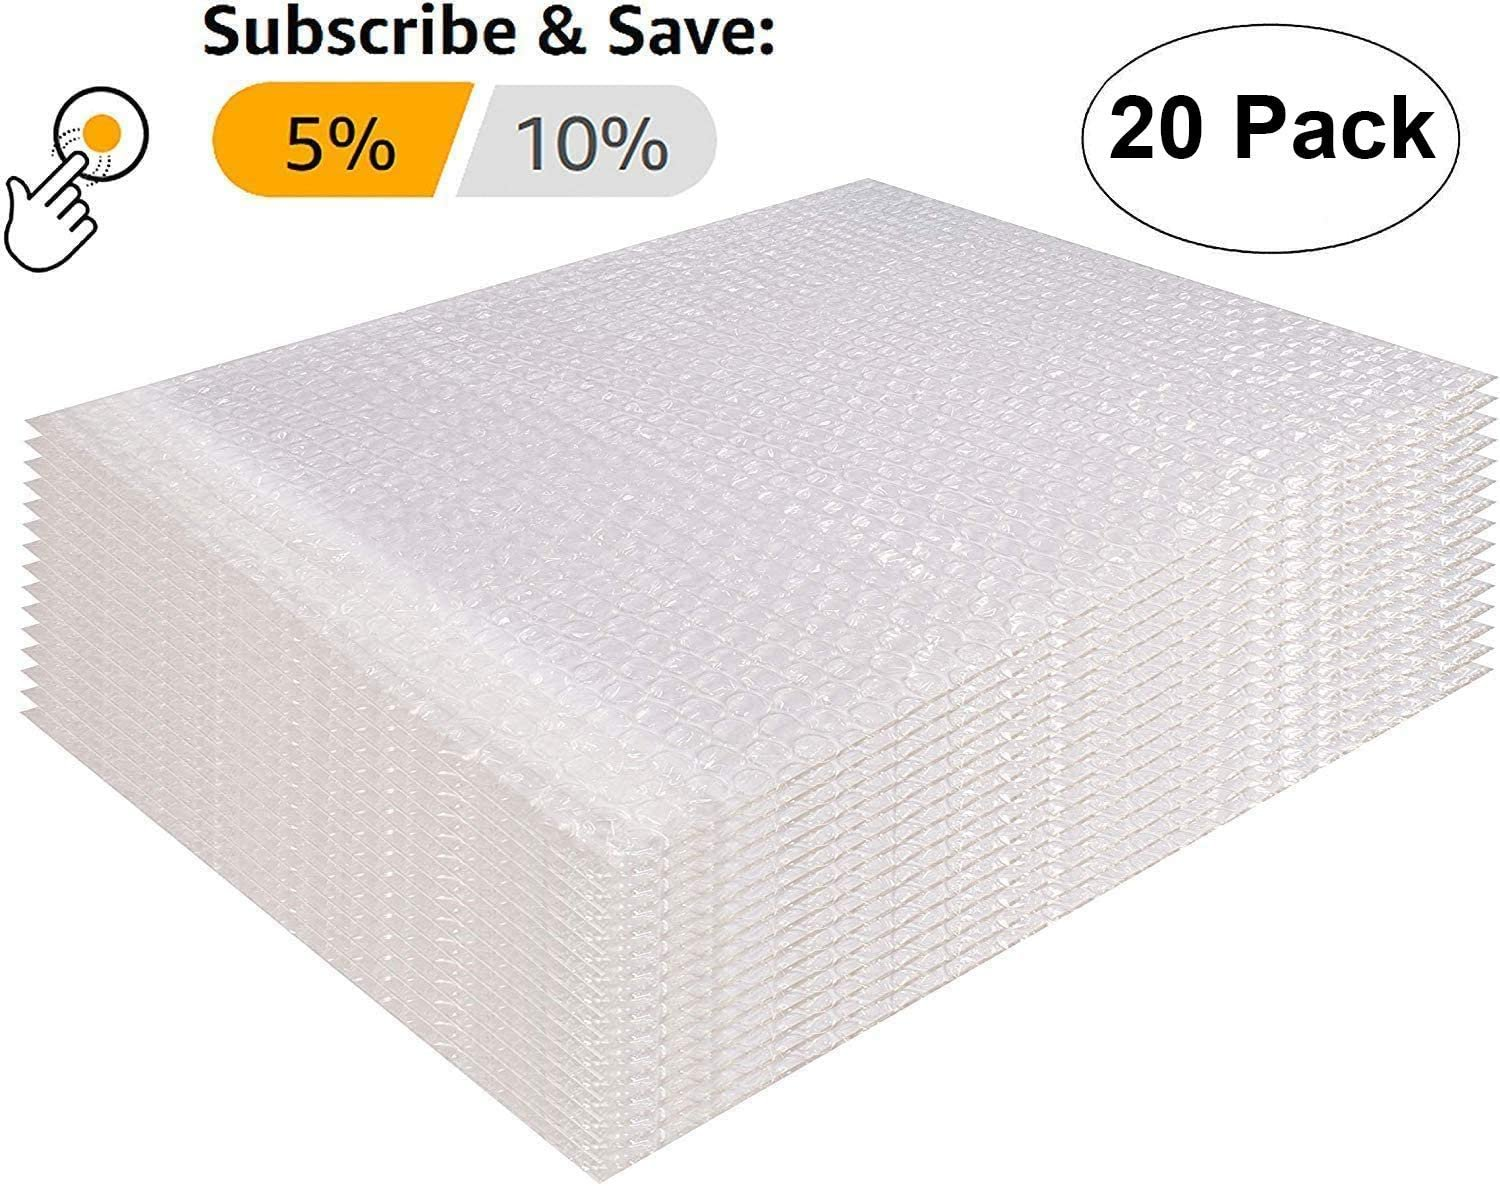 Wholesale Price. 25 Pack of Bubble Out Bags 7 x 11.5 Self-Sealing Packing Moving Bags Pouches 7 x 11 1//2 Cushion Lightweight Bags for mailing and Packaging